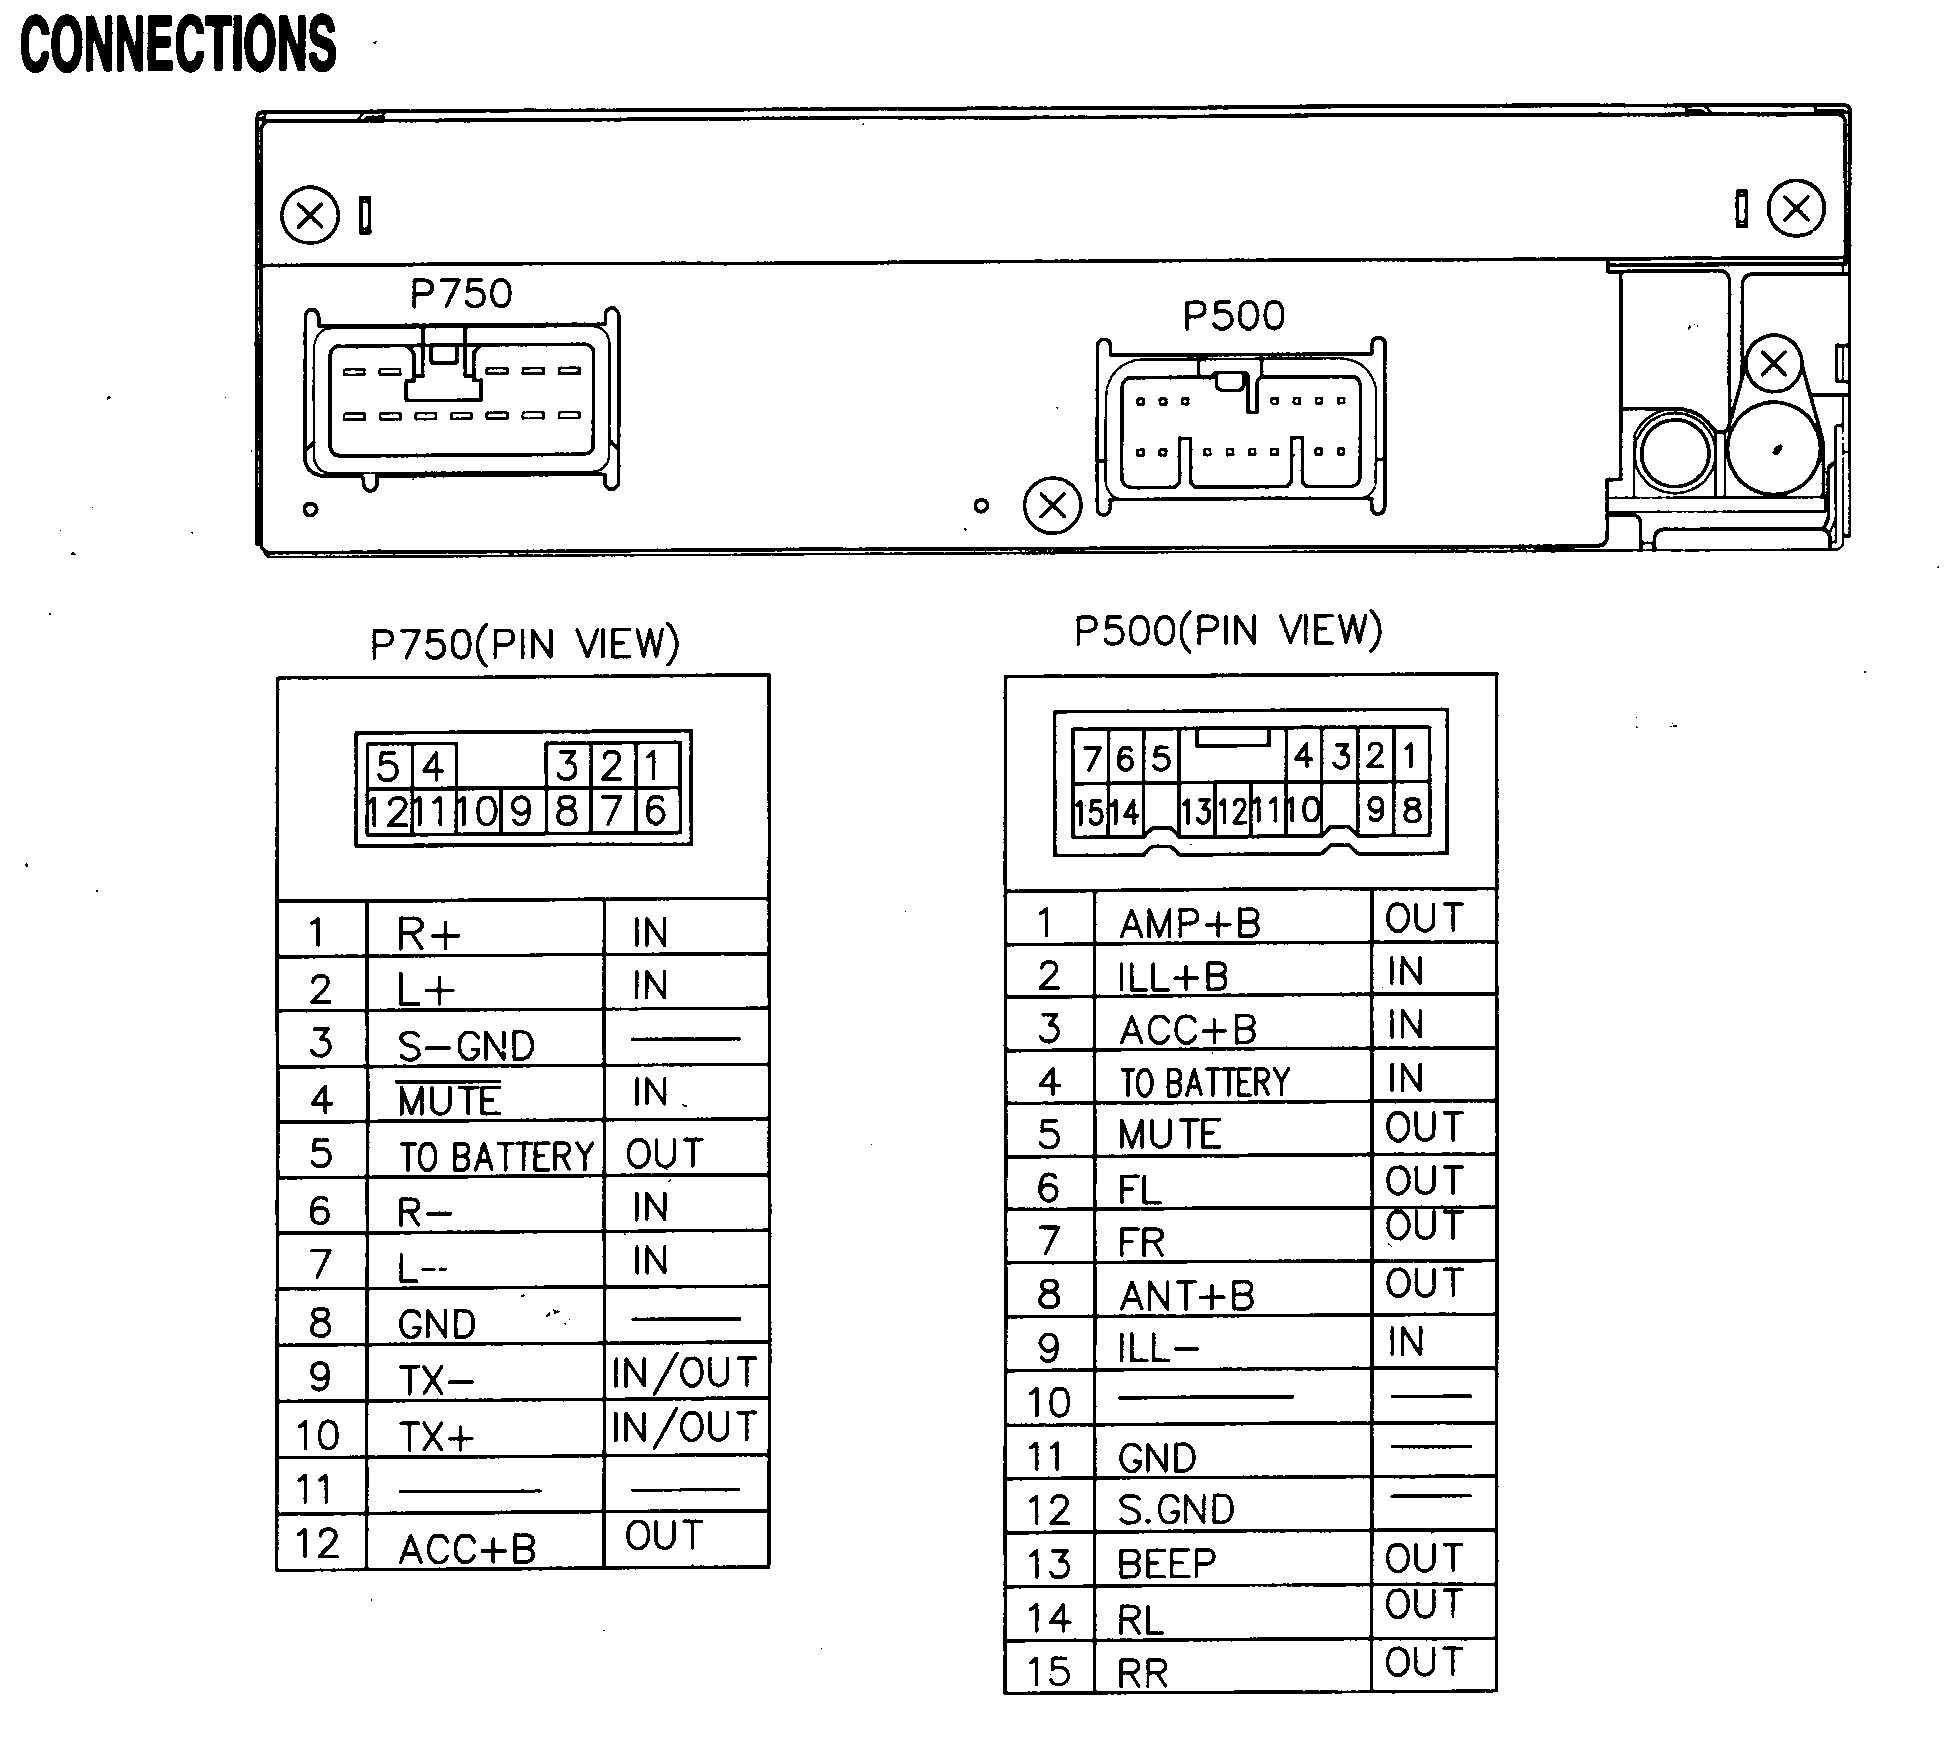 Toyota Radio Wiring Diagram Connector 2000 Connectors Wiring Diagram Get Free Image About Wiring Of Toyota Radio Wiring Diagram